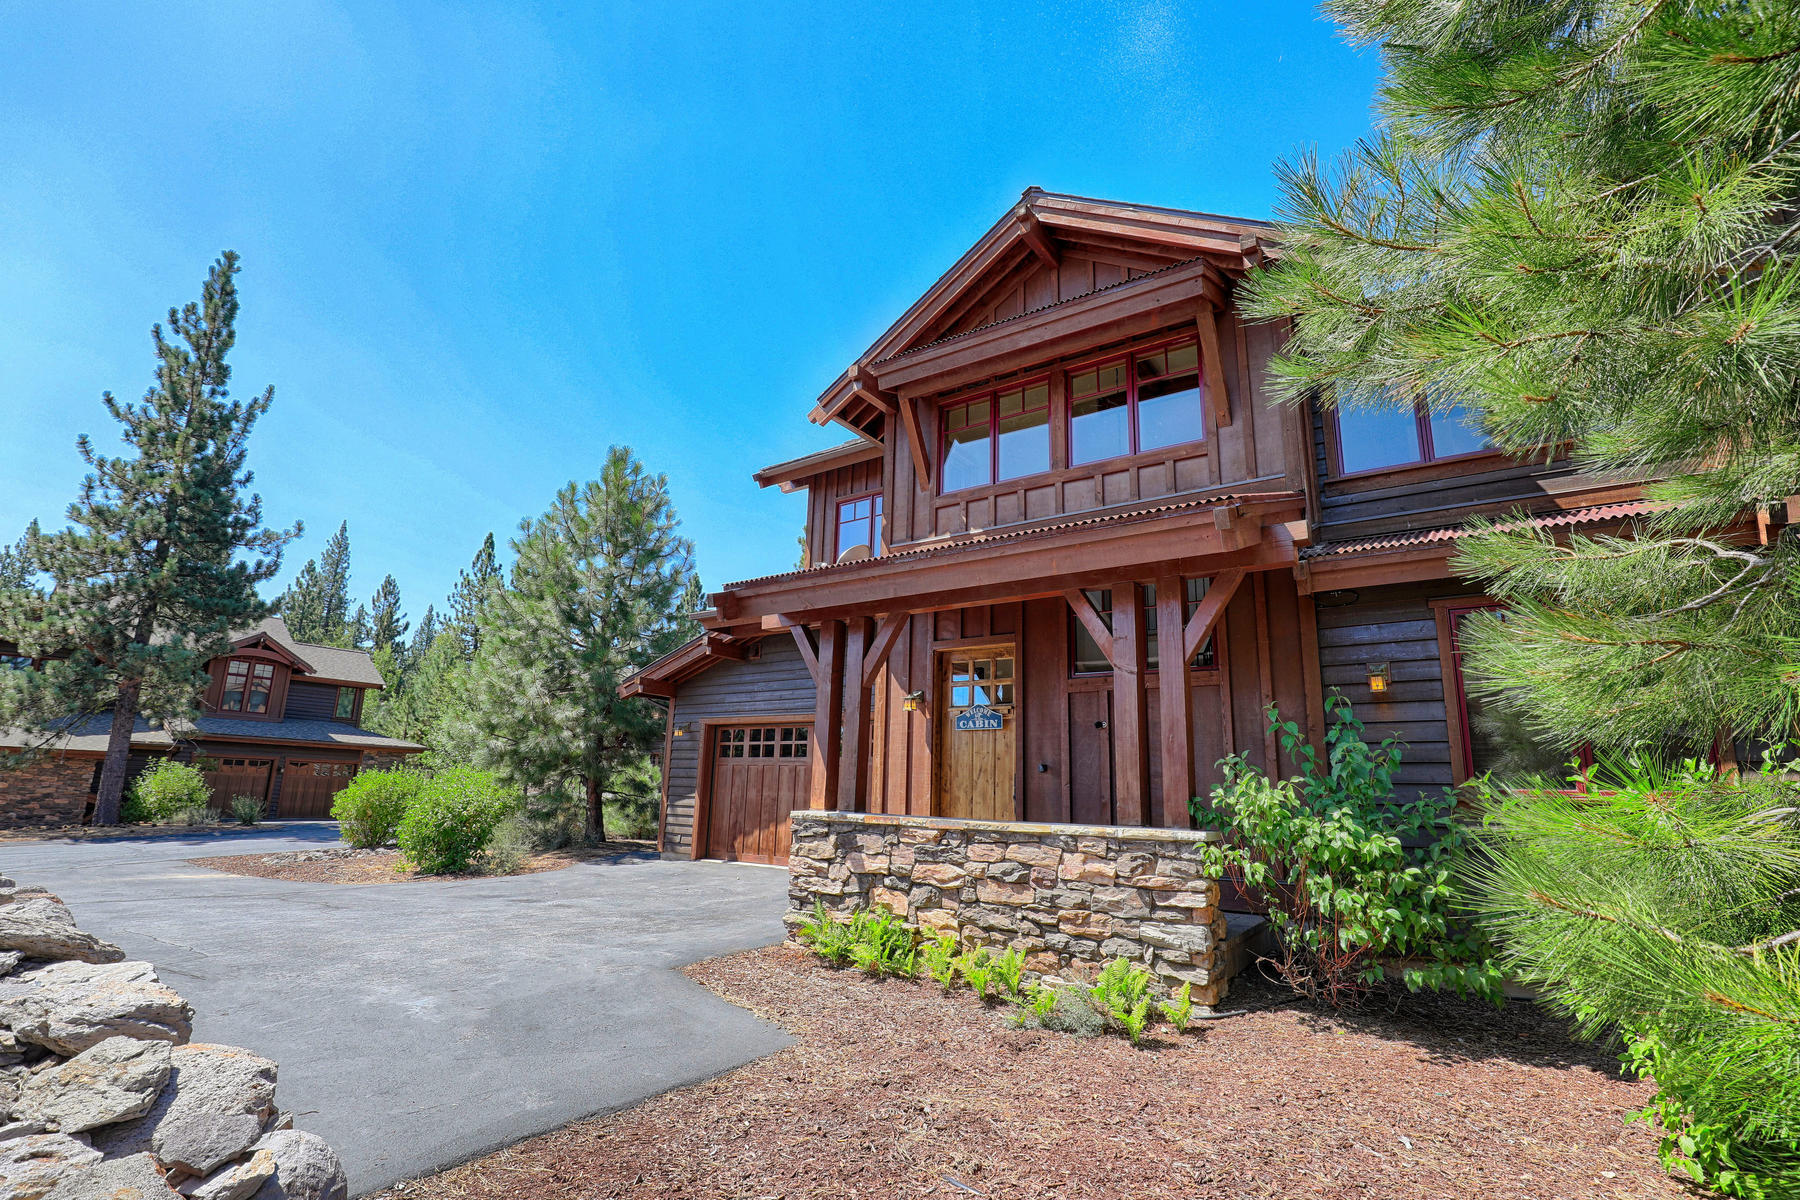 Additional photo for property listing at 10240 Valmont Trail, Truckee 10240 Valmont Trail Truckee, California 96161 United States